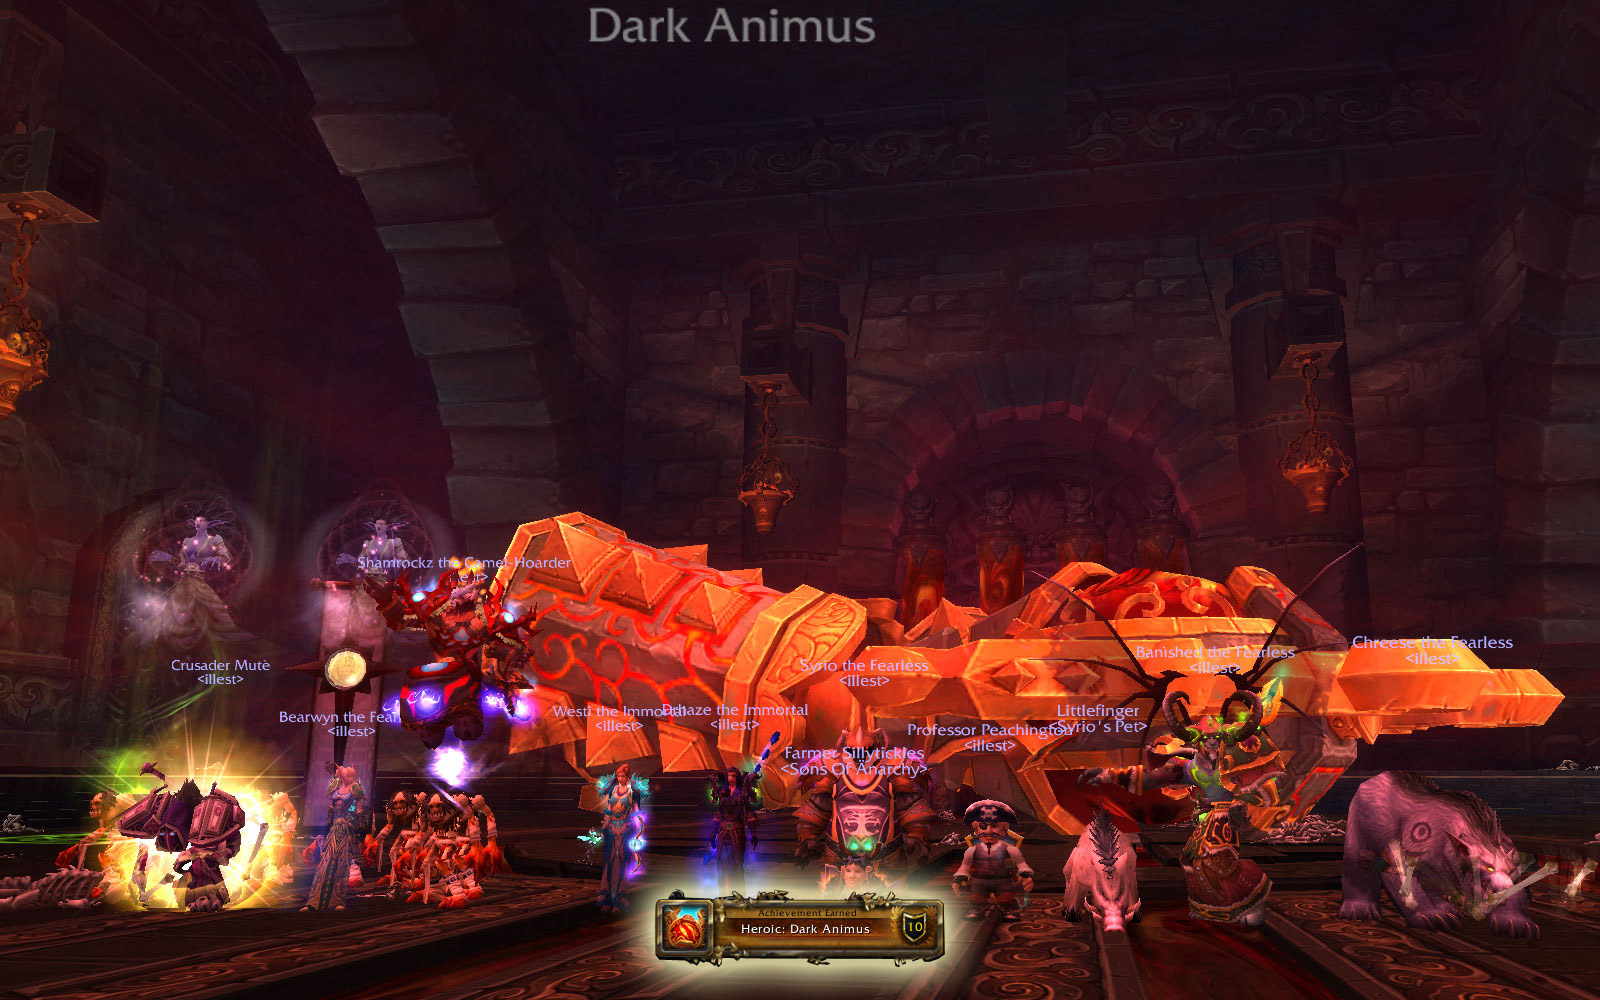 Heroic Throne of Thunder: Dark Animus